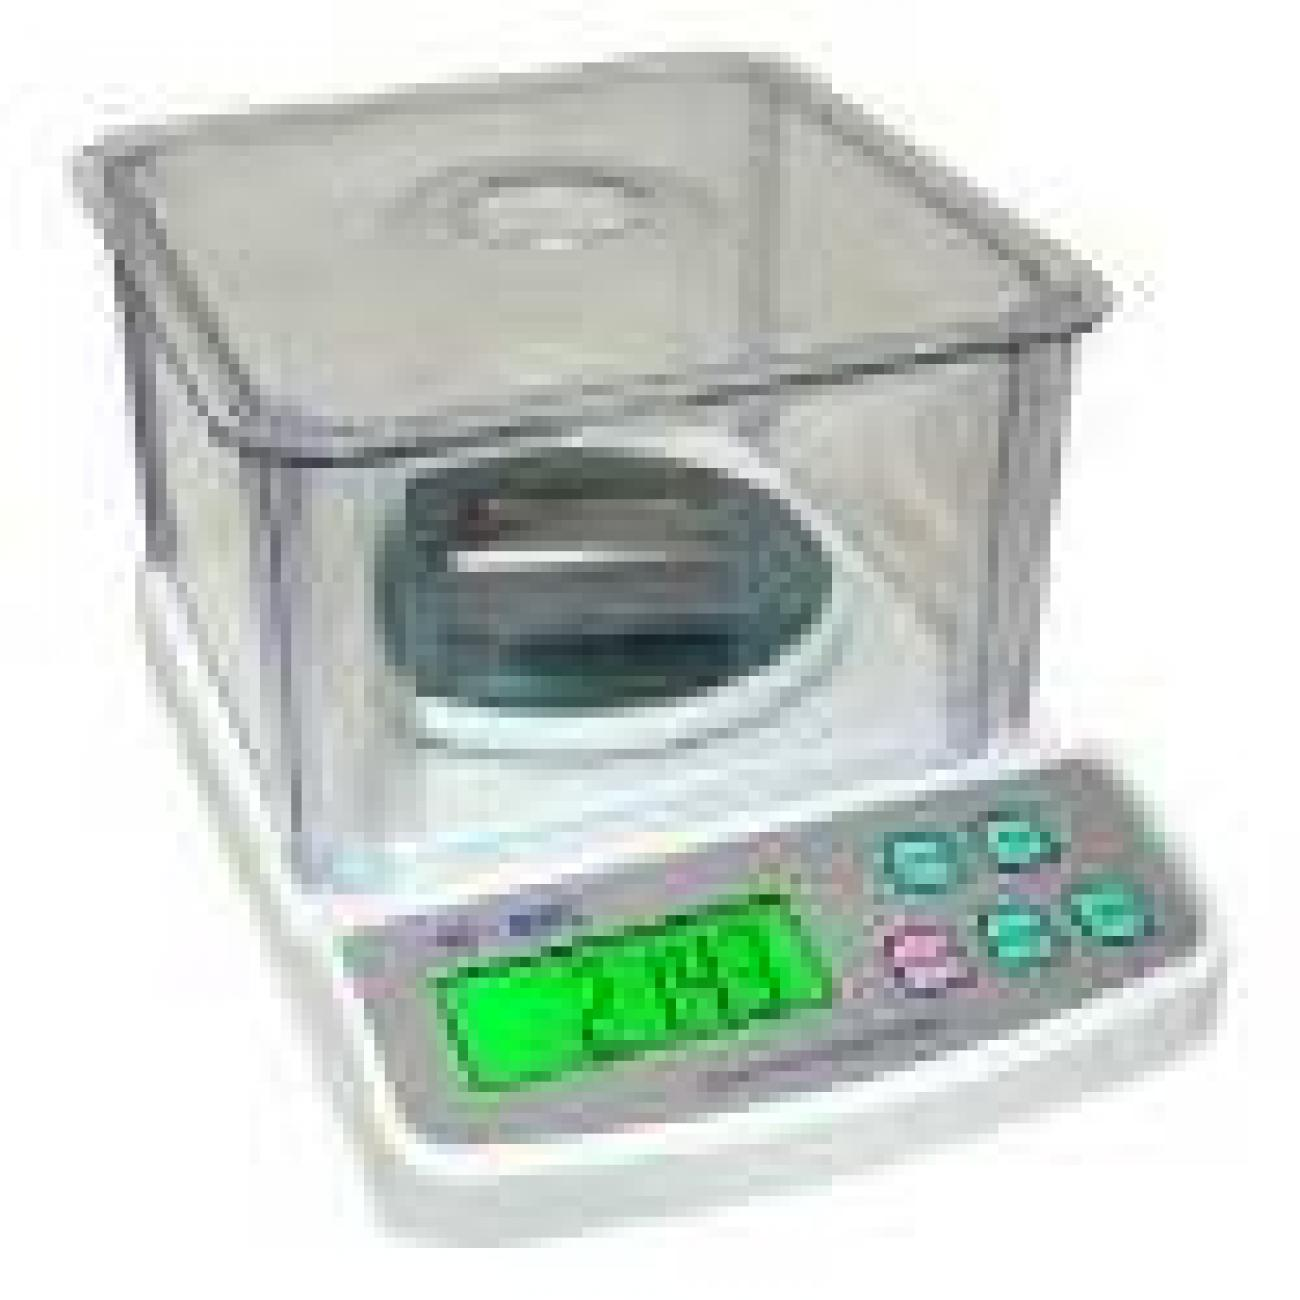 jewellery_weighing_scale